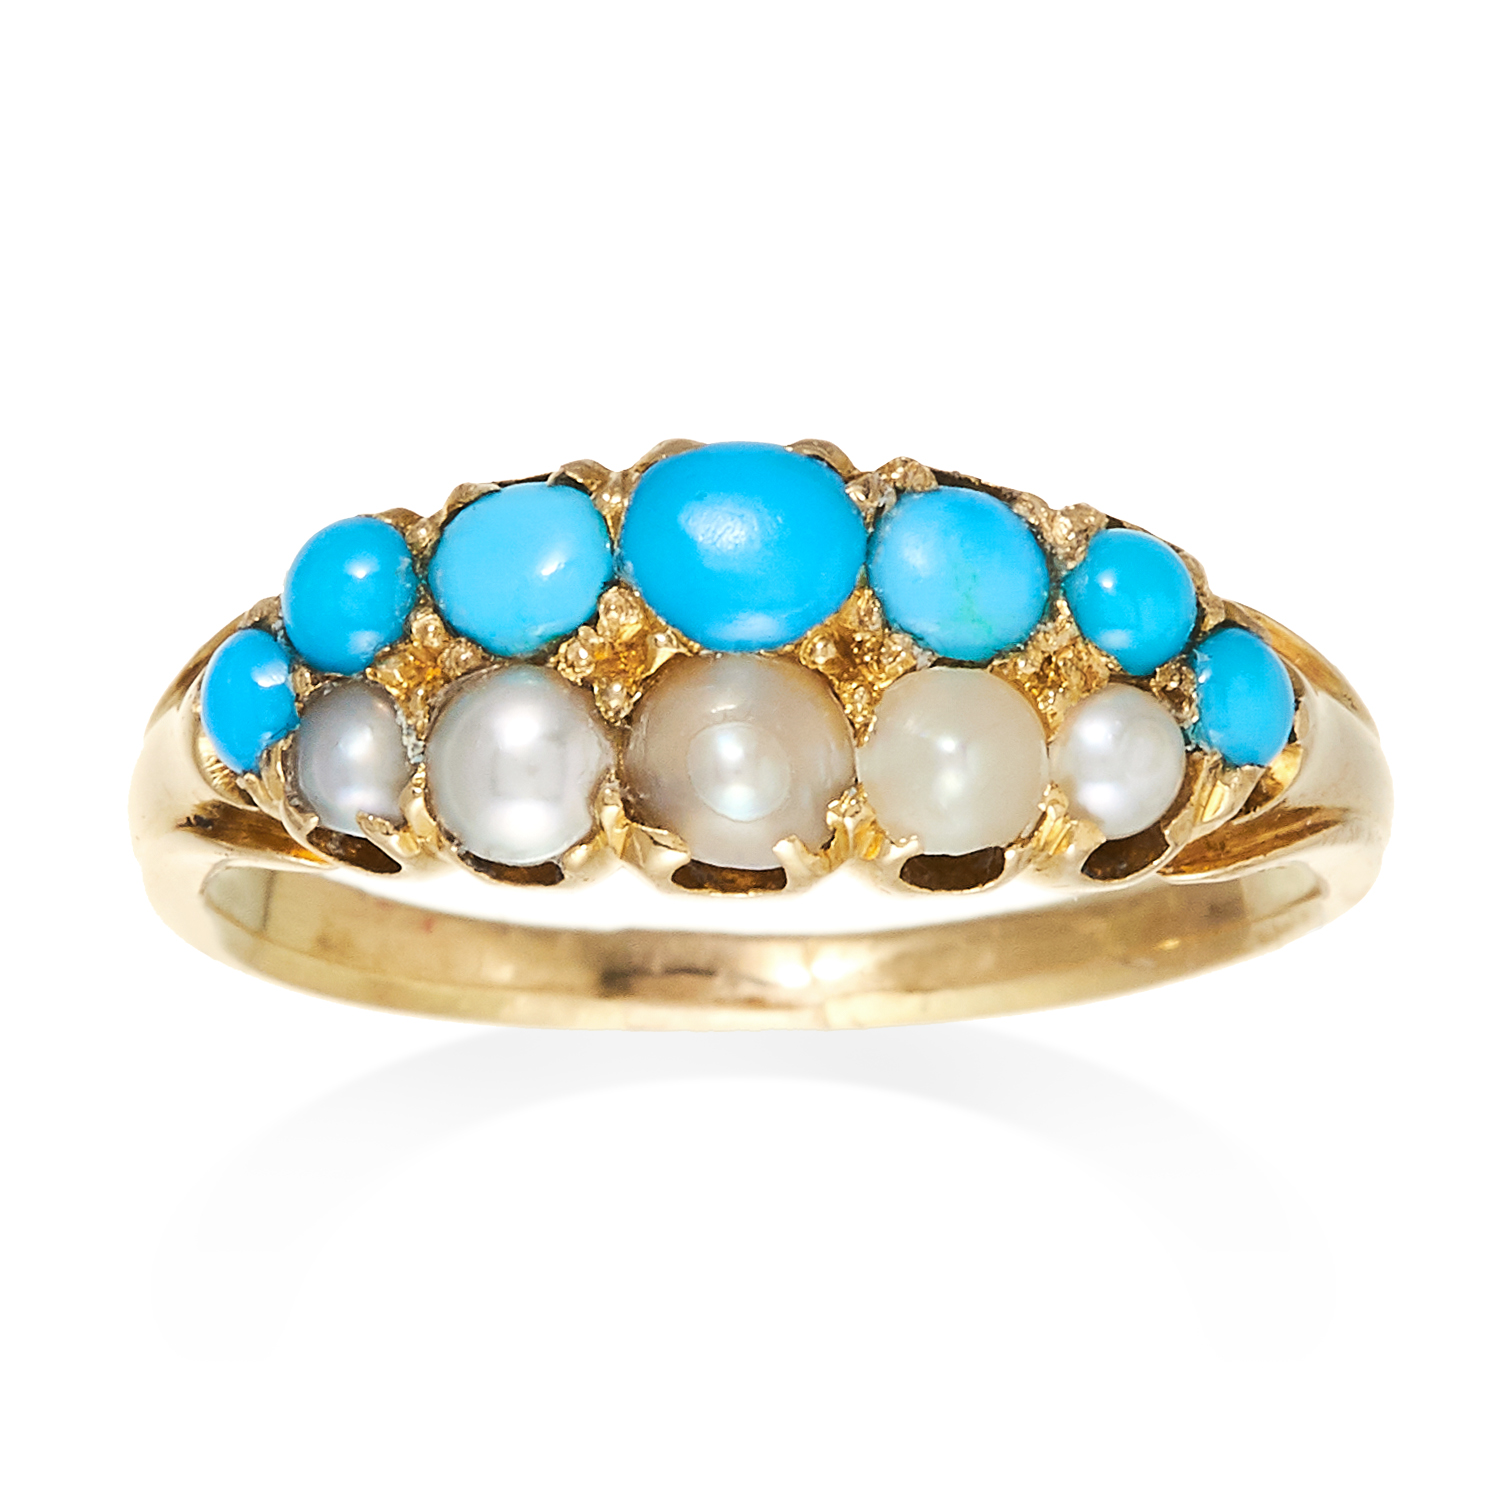 AN ANTIQUE PEARL AND TURQUOISE RING in high carat yellow gold, comprising of two rows of turquoise